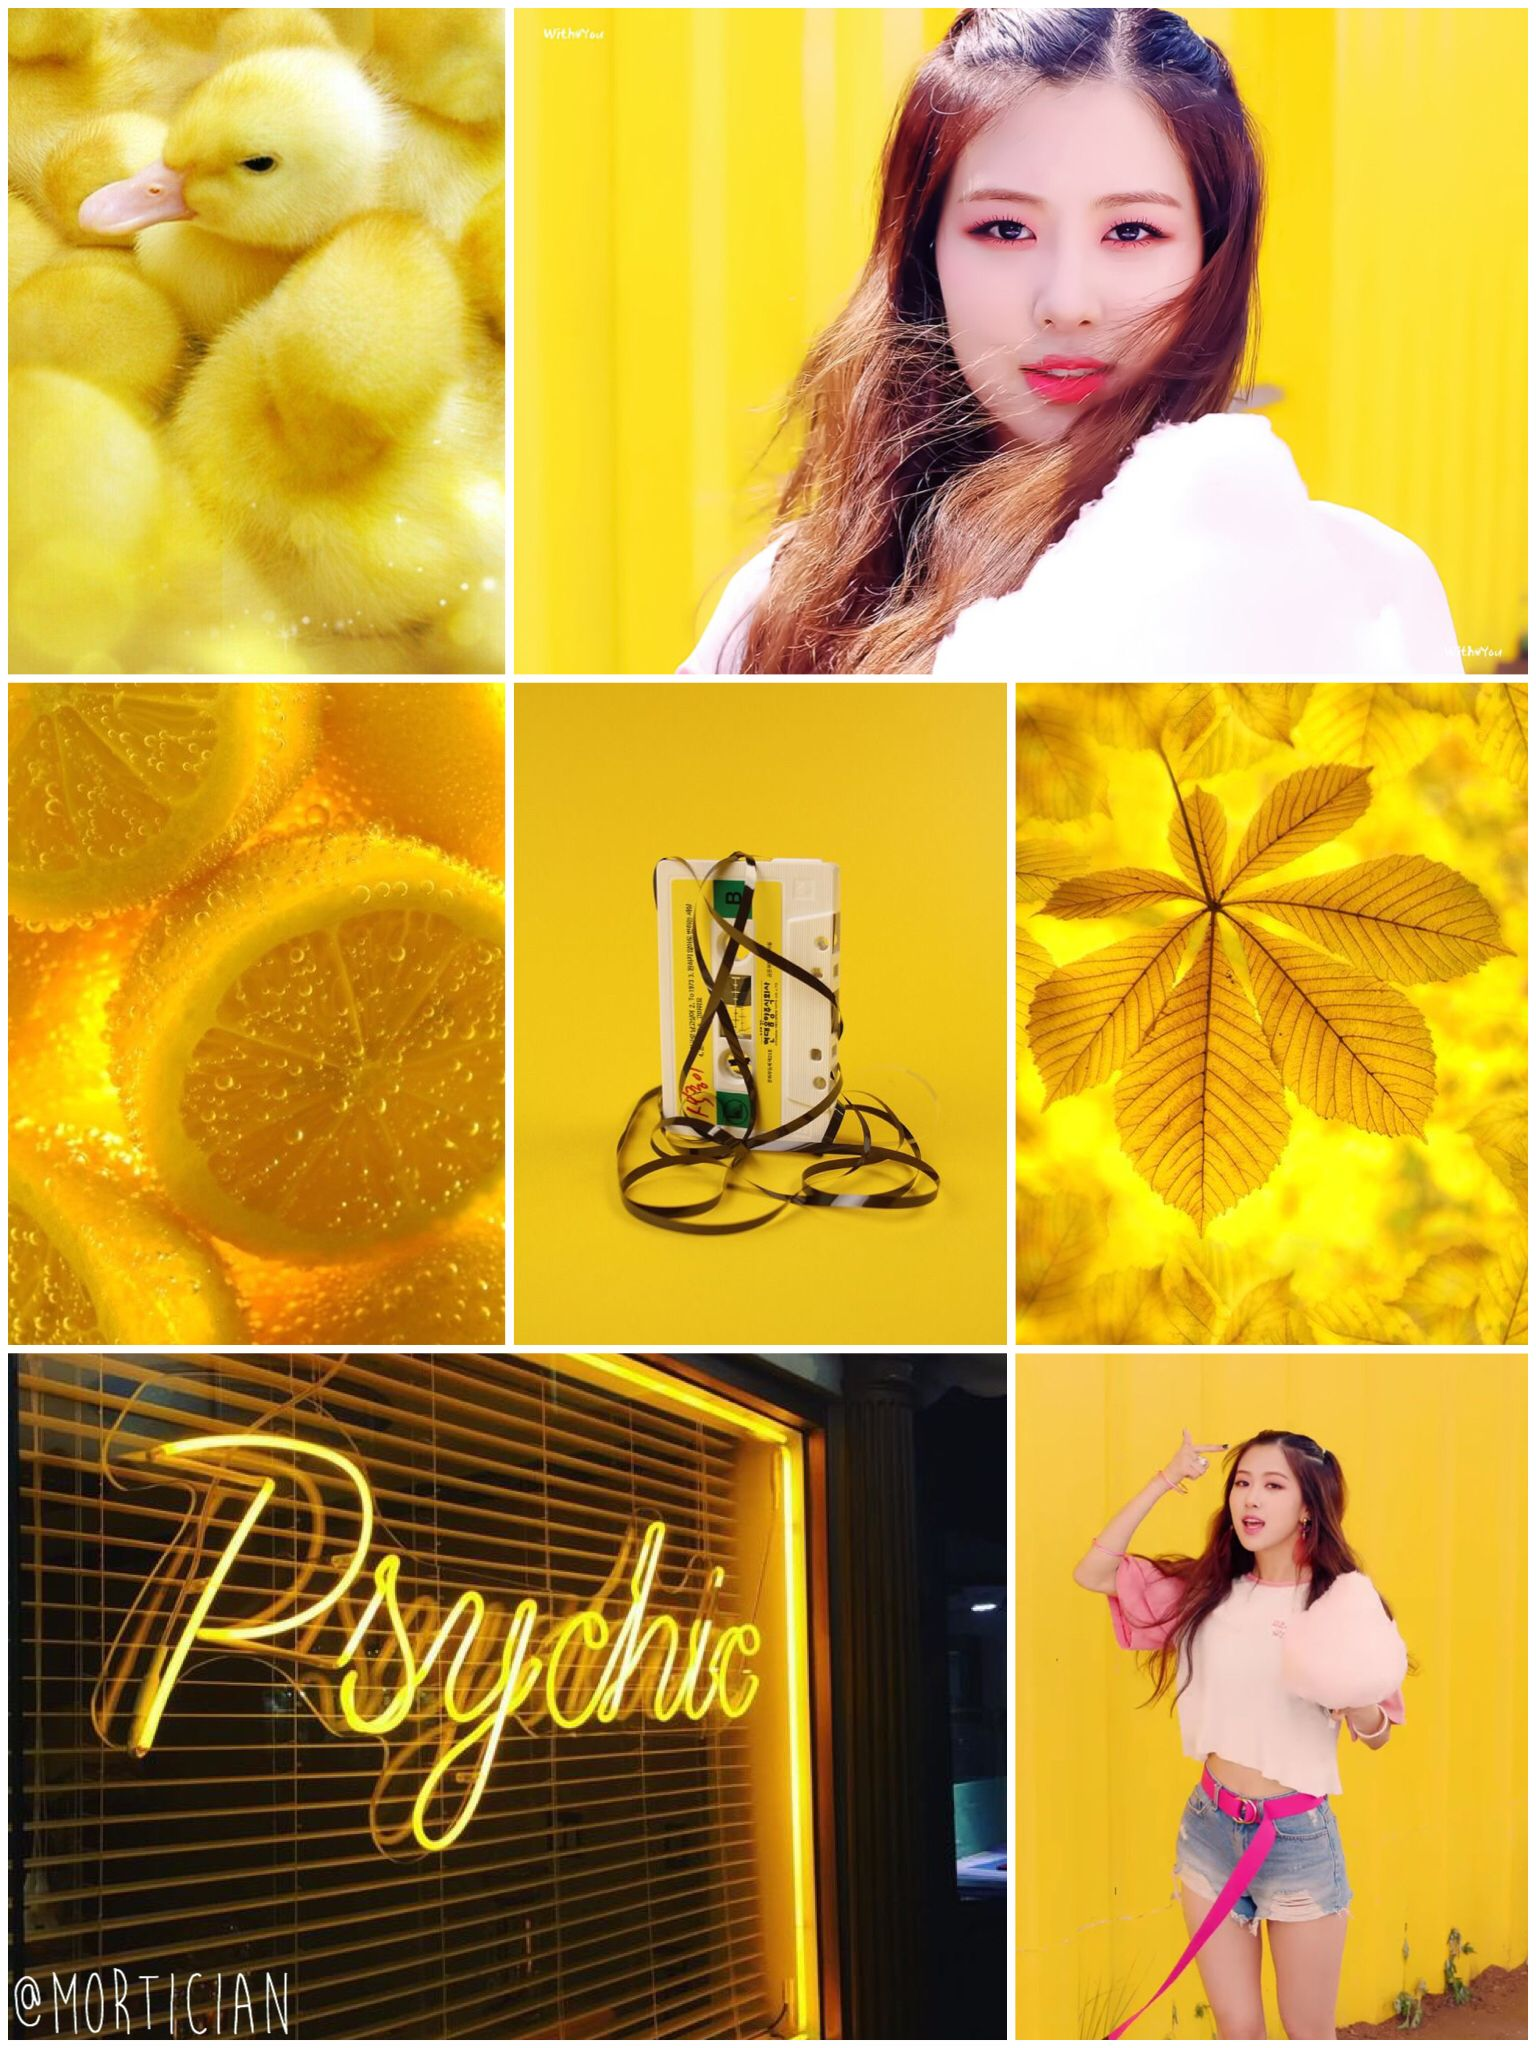 Ros blackpink aesthetic moodboard yellow black flower kpop ros blackpink aesthetic moodboard yellow black flower kpop mightylinksfo